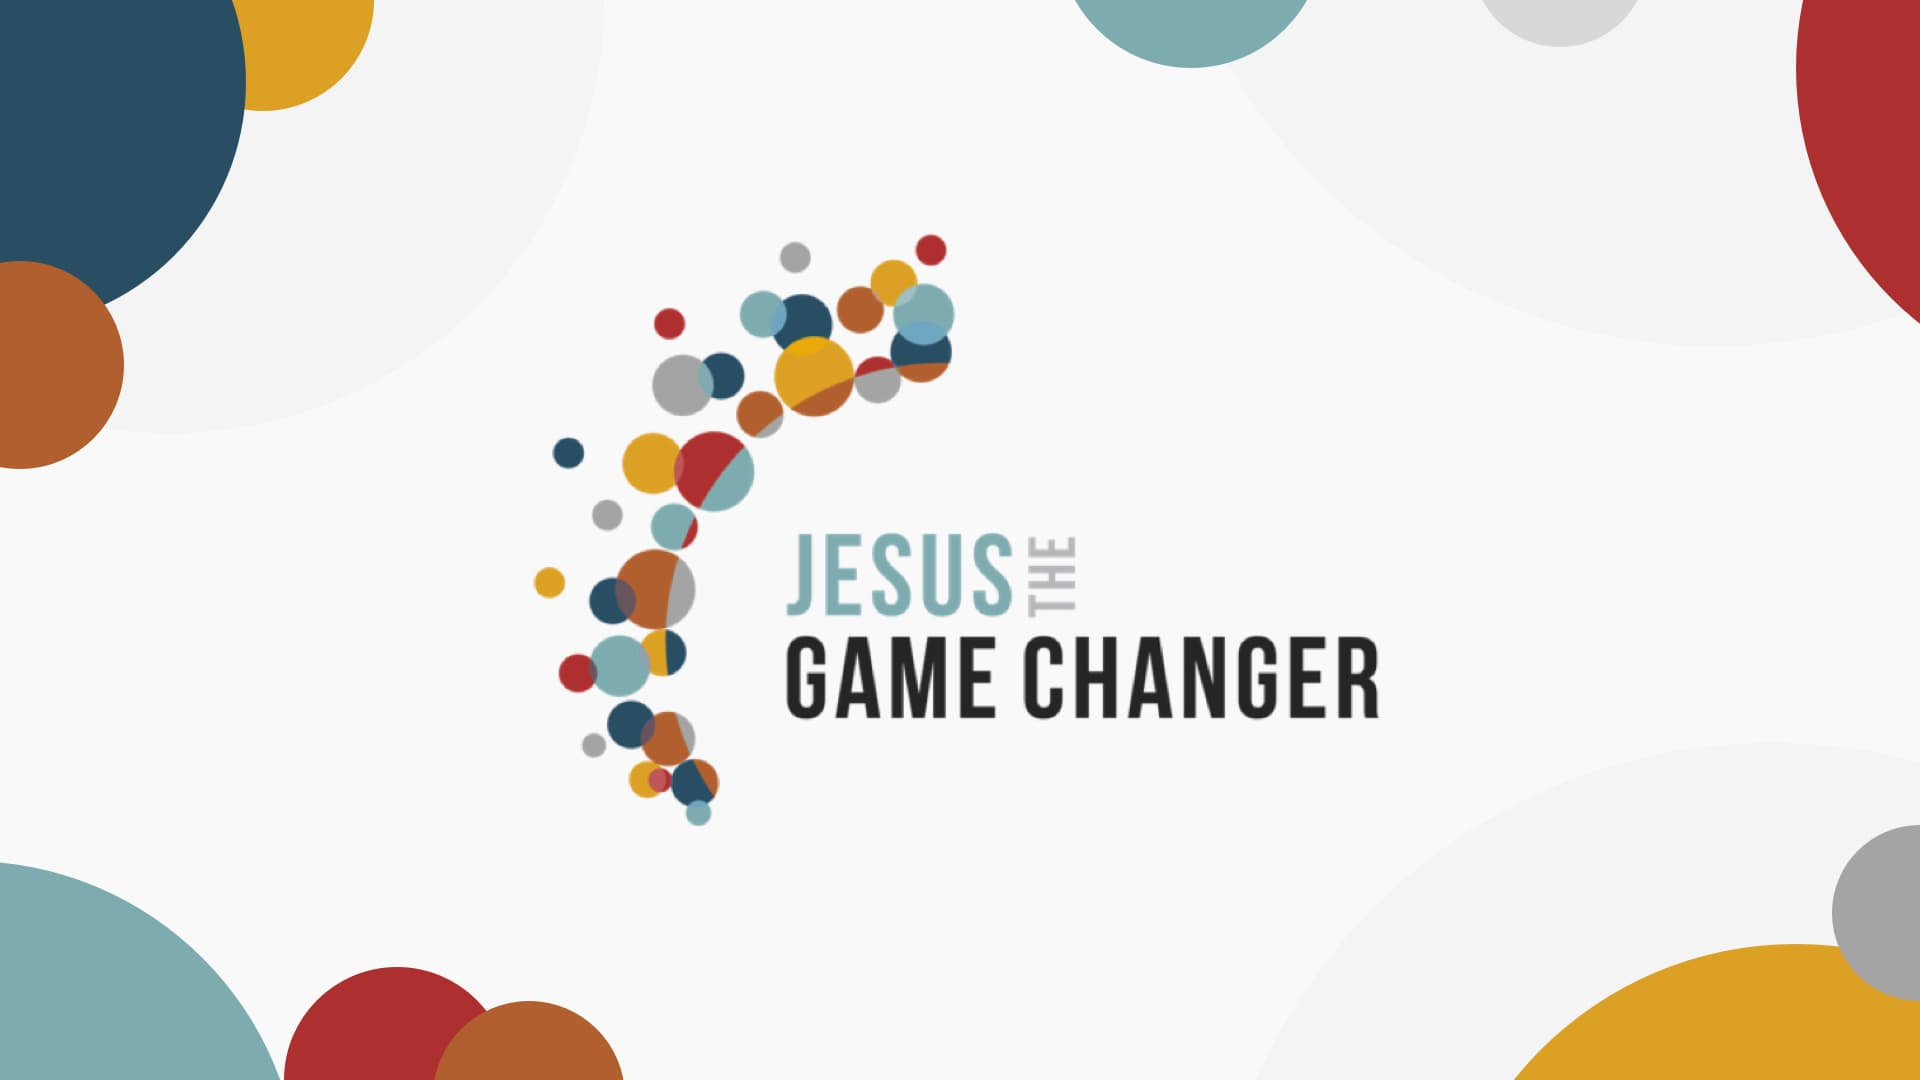 Jesus the Game Changer: Care